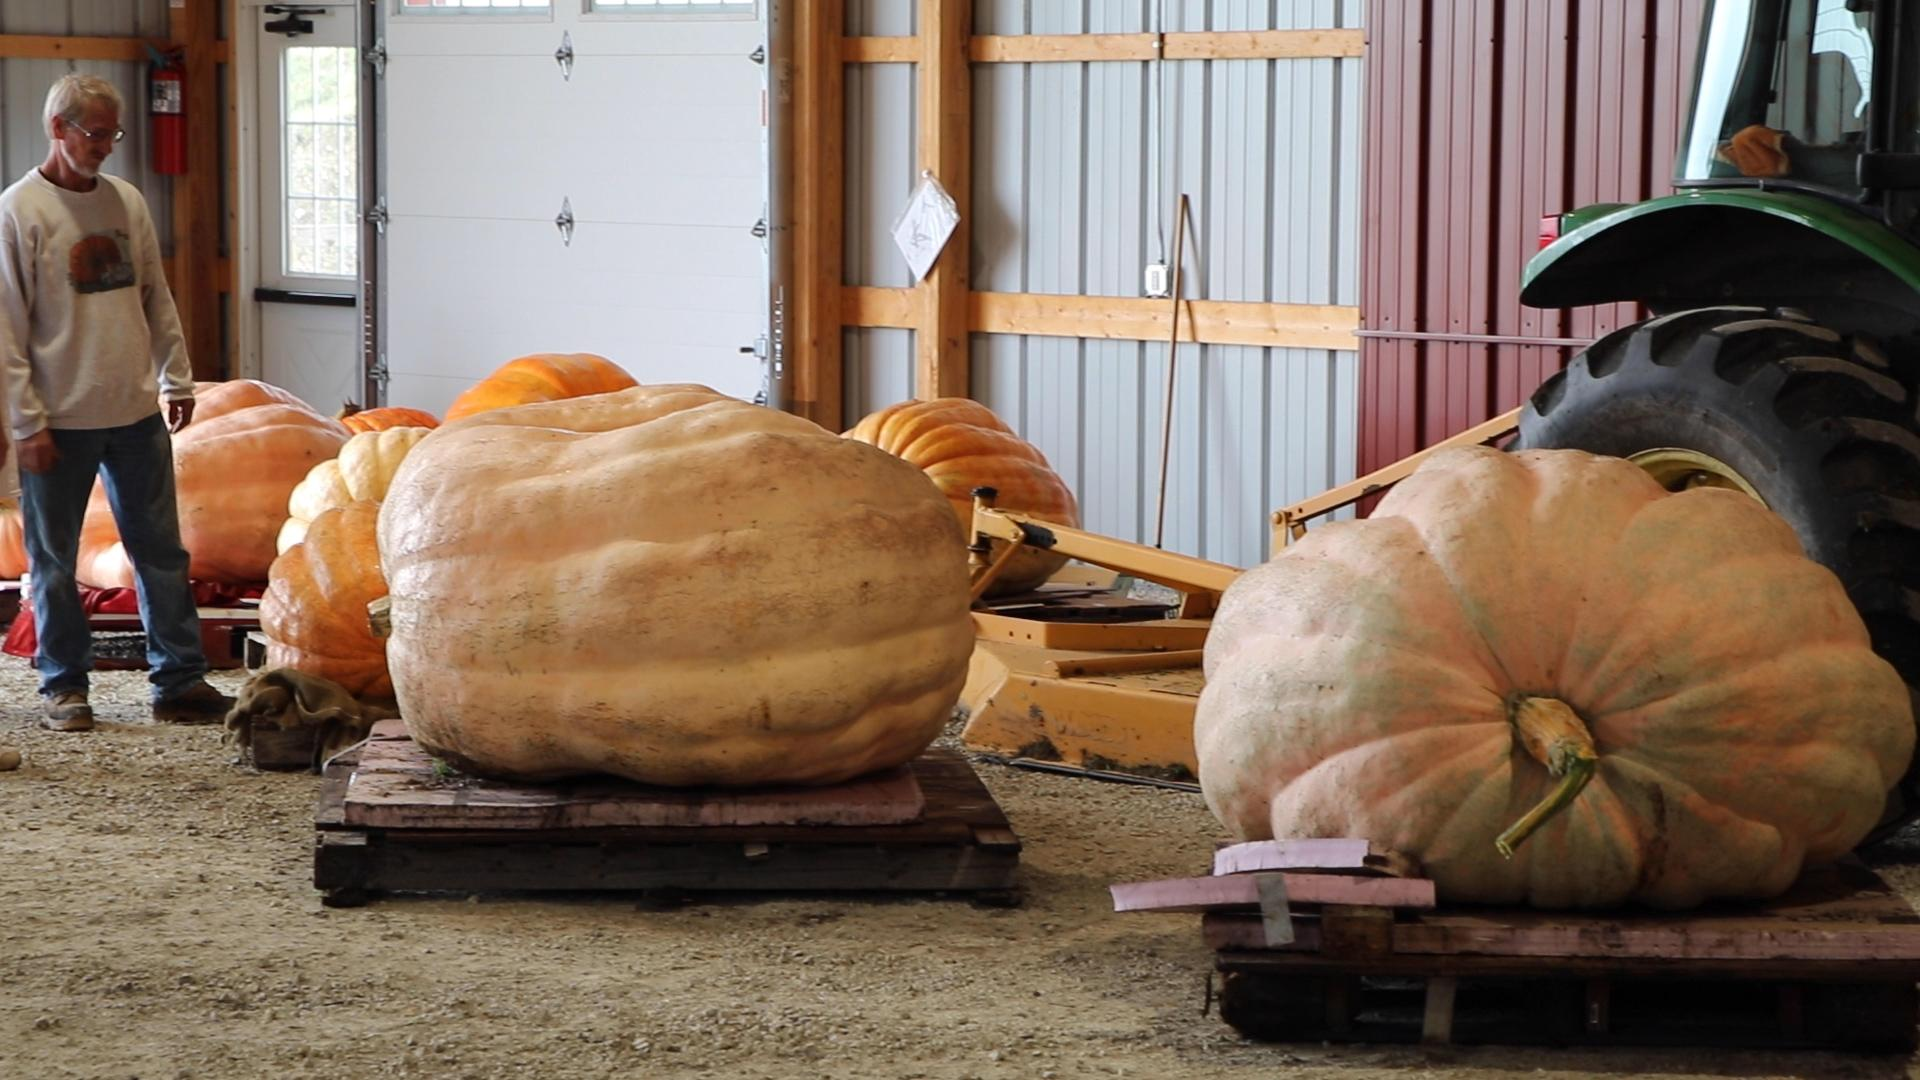 Giant pumpkins are lined up before they're weighed at Heap's Giant Pumpkin Farm in Minooka, Illinois. (Evan Garcia / WTTW News)